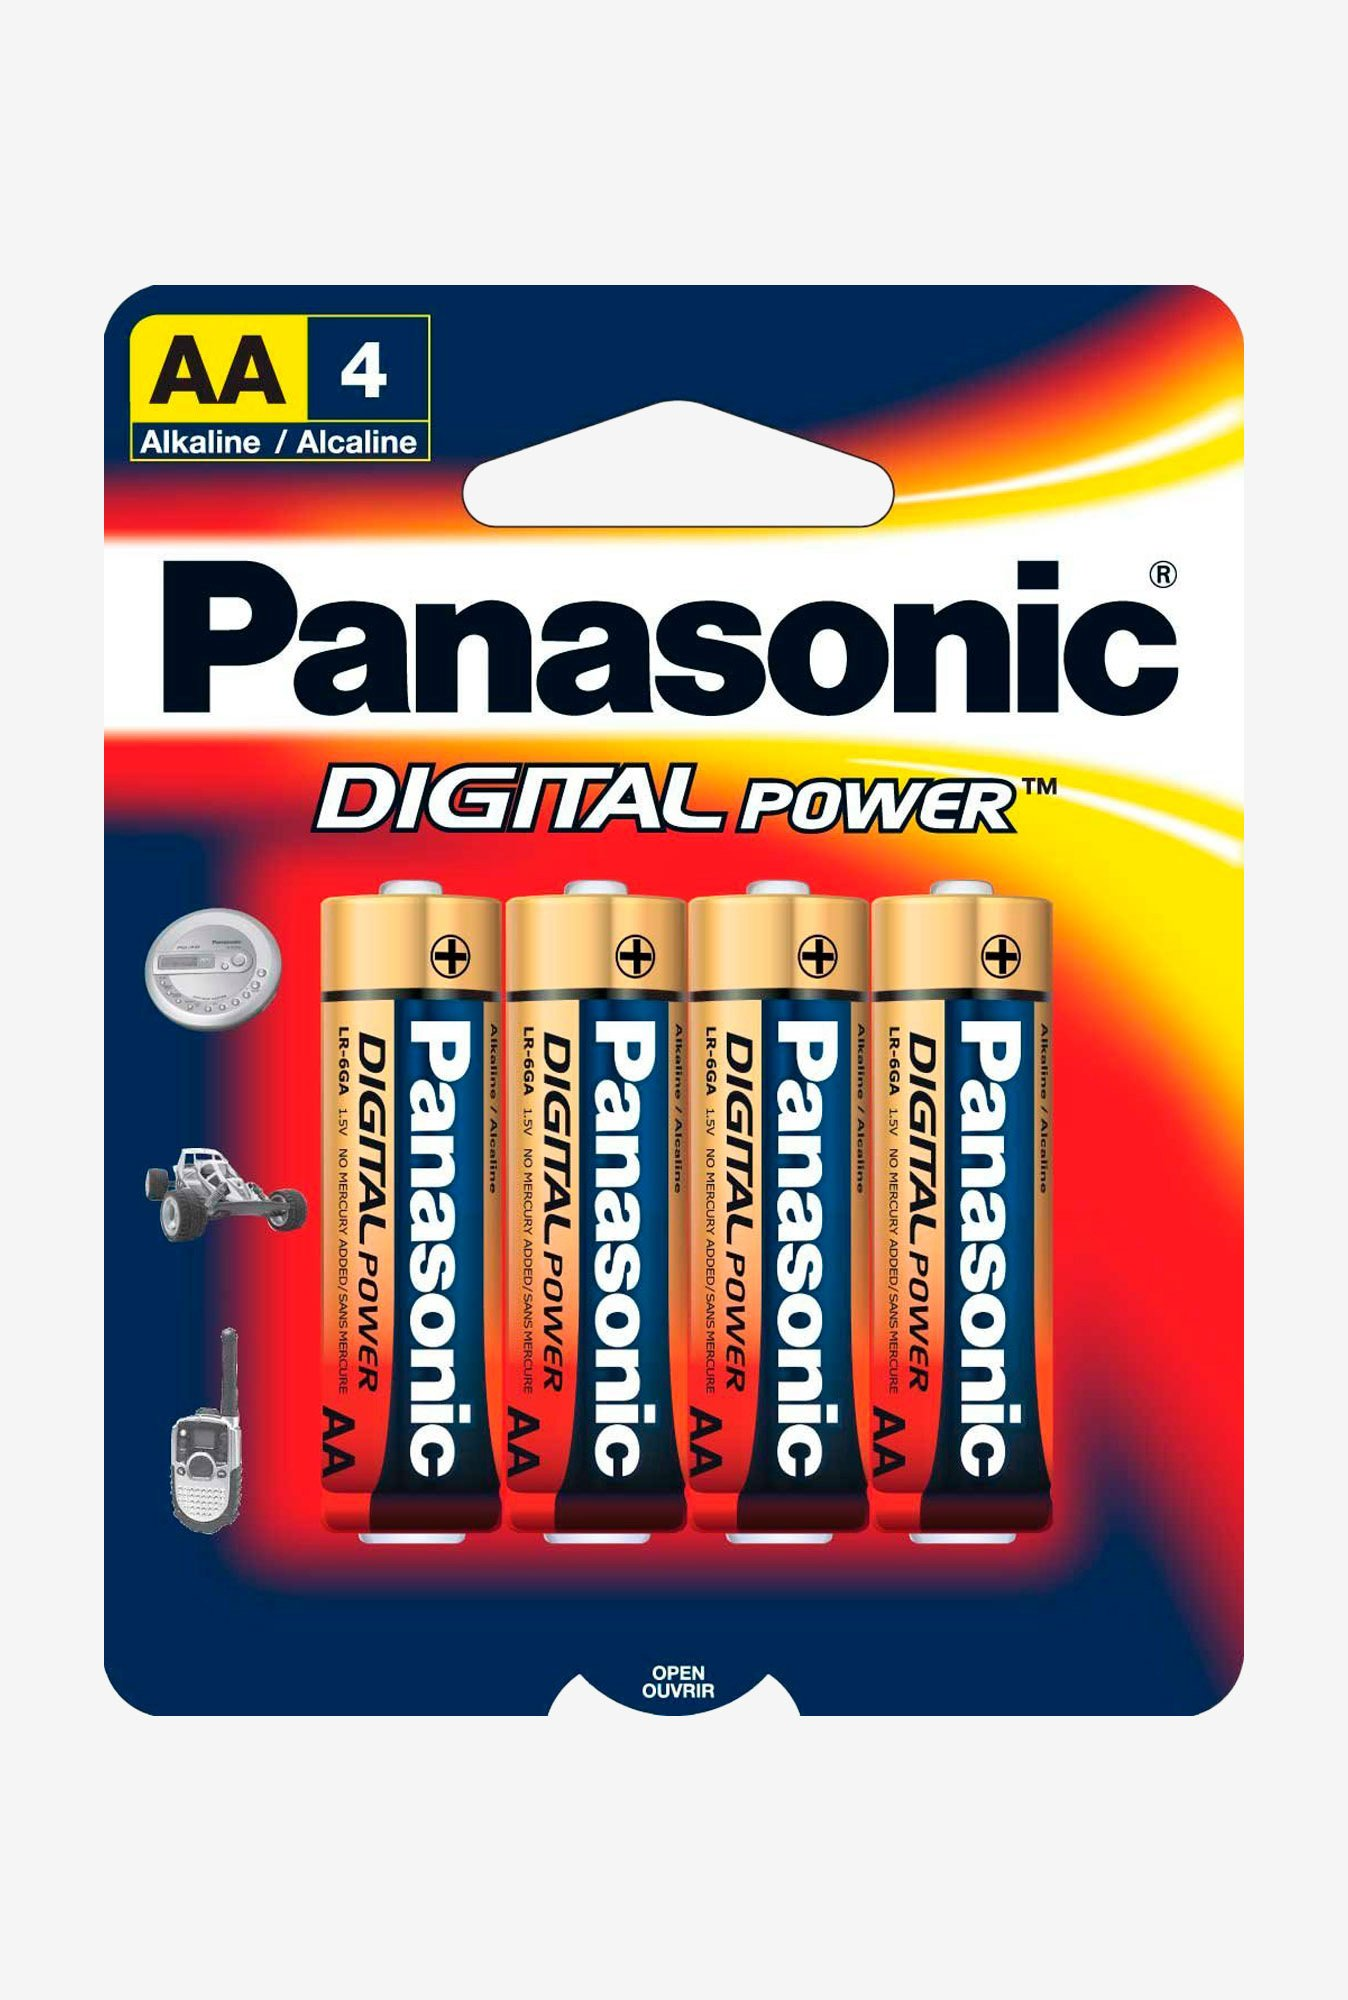 Panasonic Digital Power Lr-6Ga/4B Aa Alkaline Batteries - 4 Pack